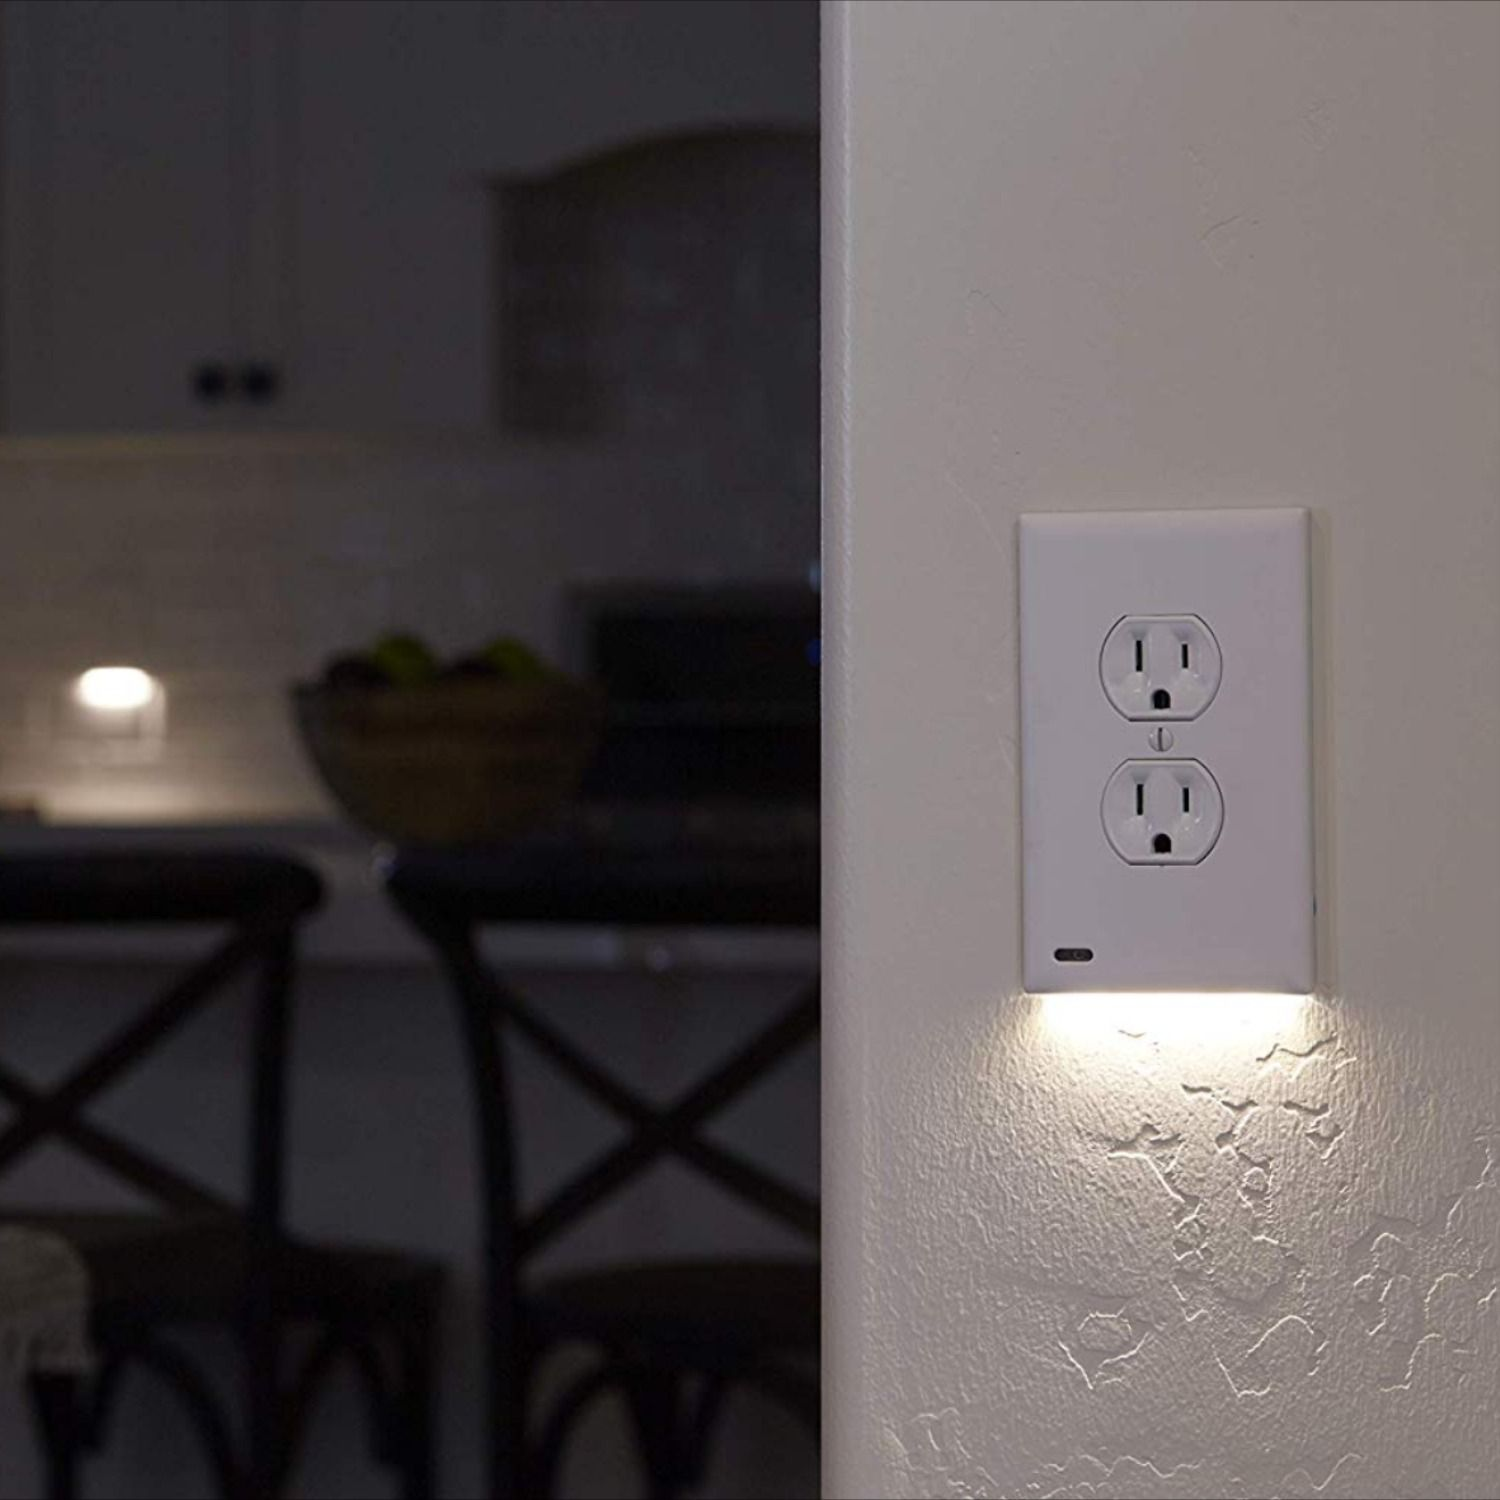 Led Night Light Wall Plate Cover Plates On Wall Led Night Light